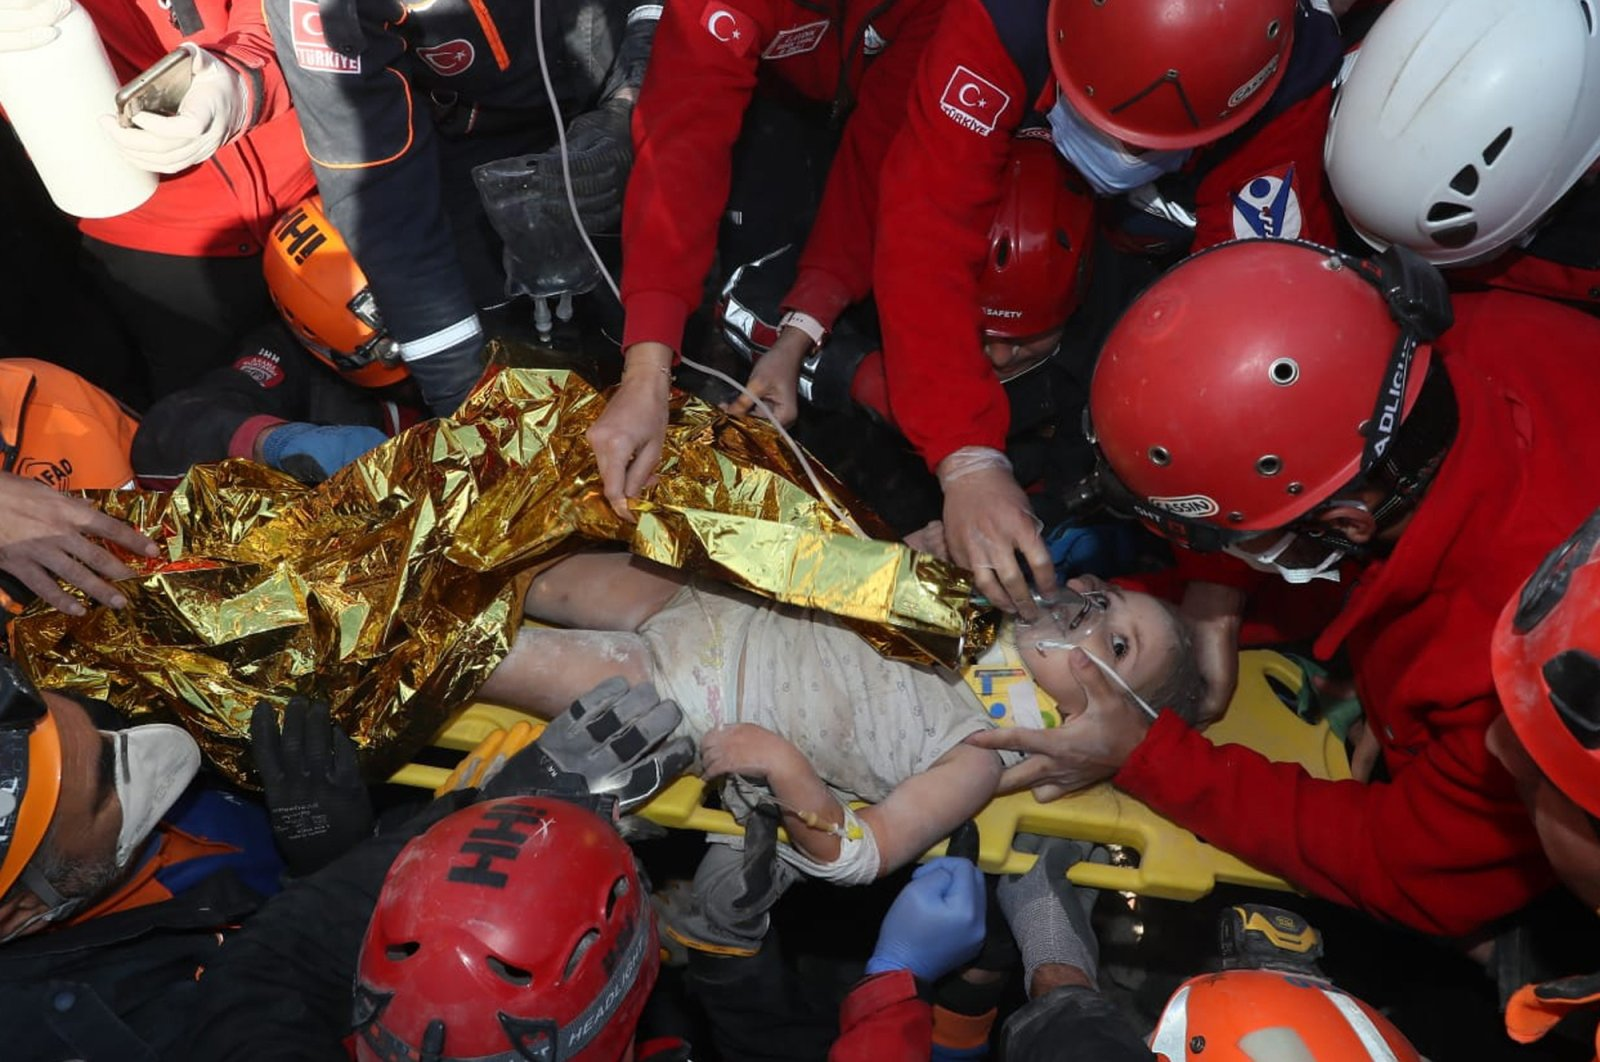 Rescue workers surround Ayda Gezgin, who was pulled from the rubble 91 hours after an earthquake rocked Izmir, western Turkey, Nov. 3, 2020. (AP Photo)